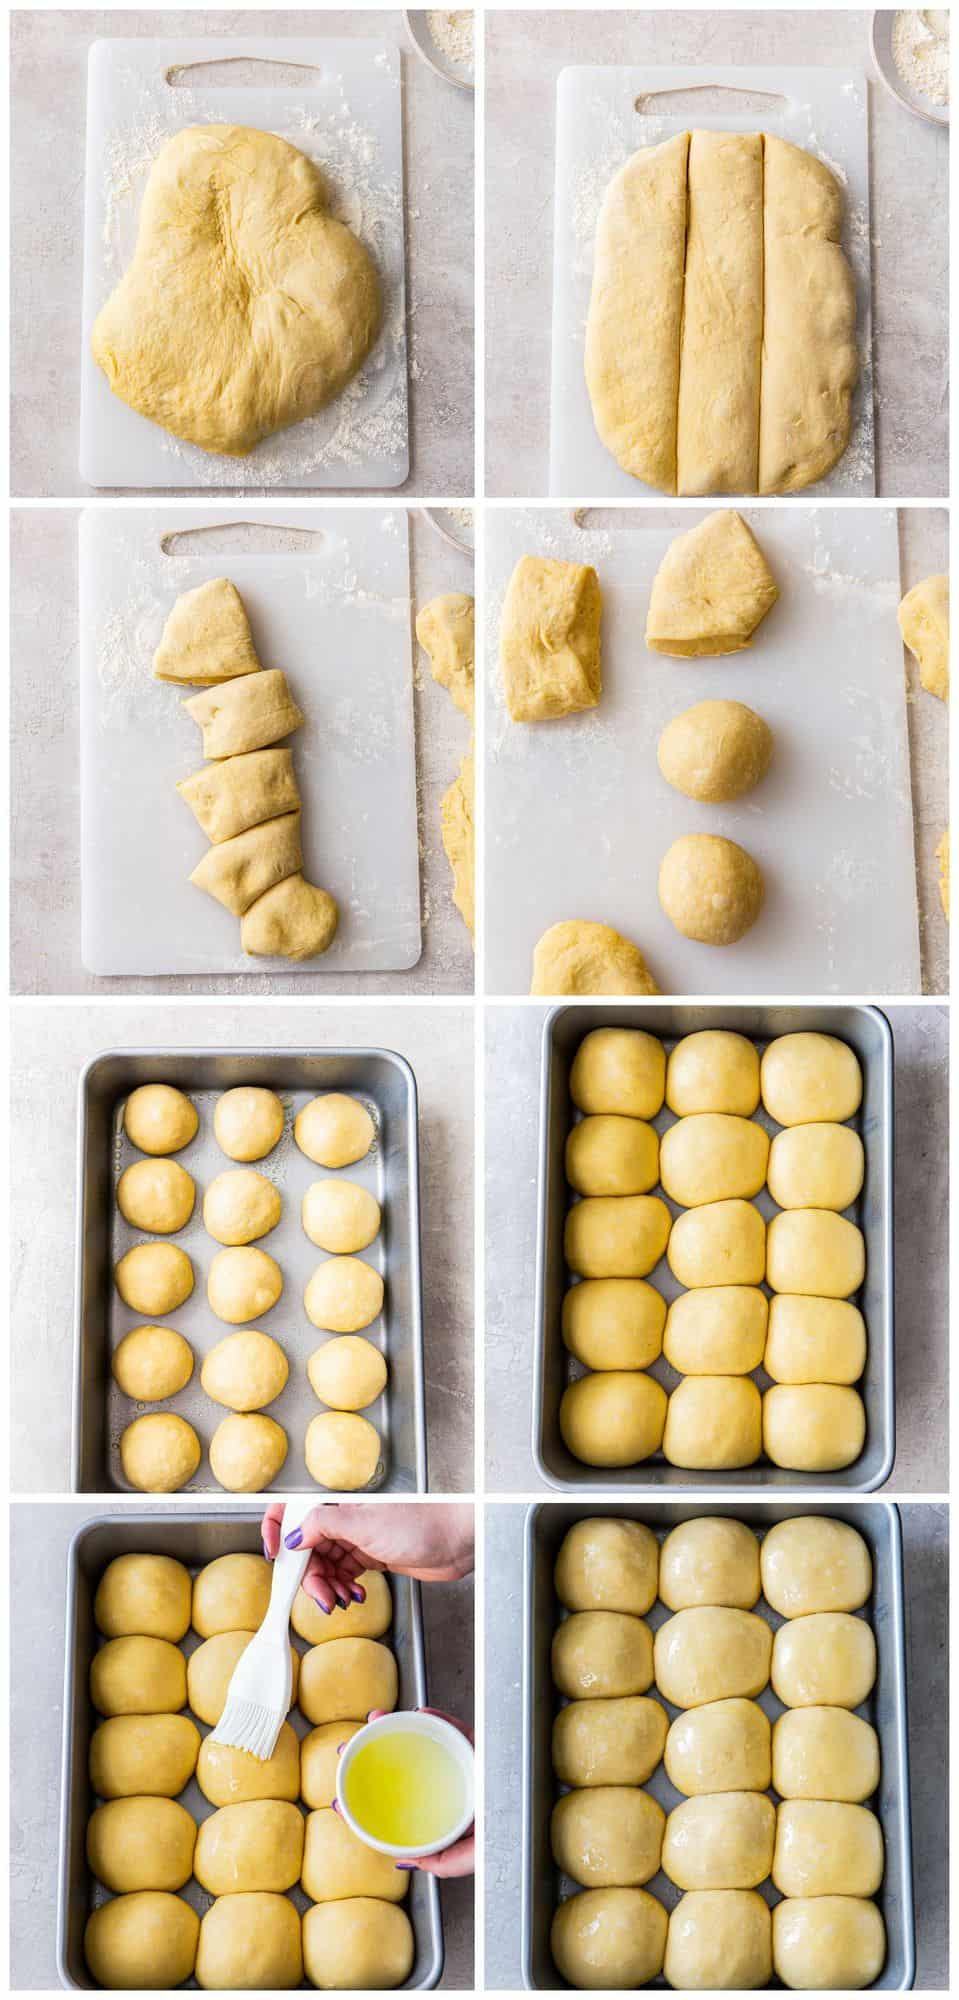 step by step photos for how to make hawaiian rolls